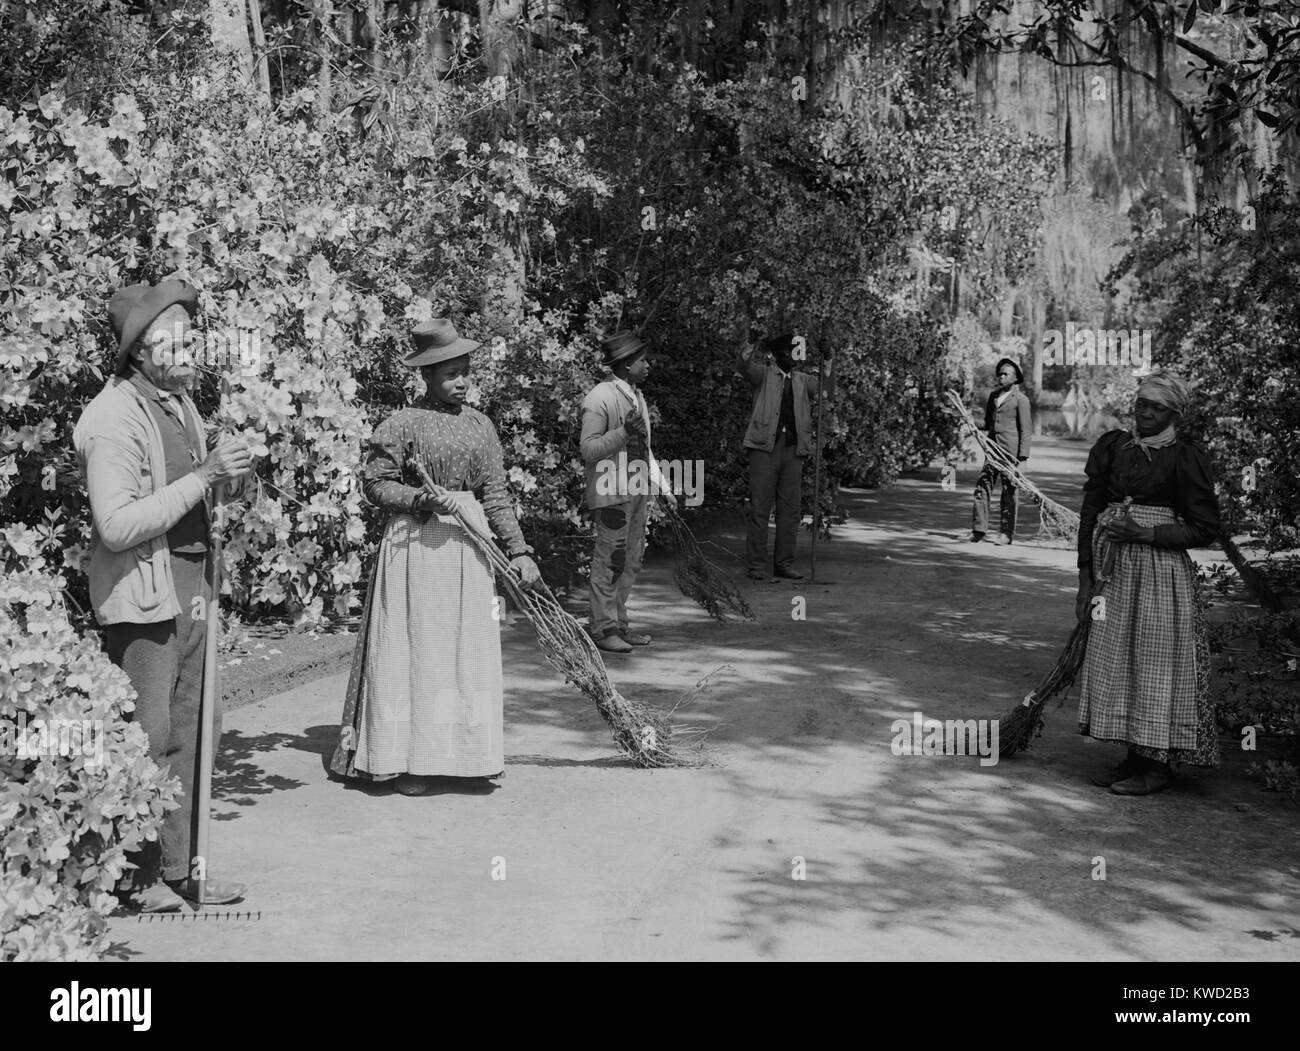 African American caretakers at the Magnolia Plantation and Gardens in Charleston, SC. The sweepers hold crude brooms - Stock Image